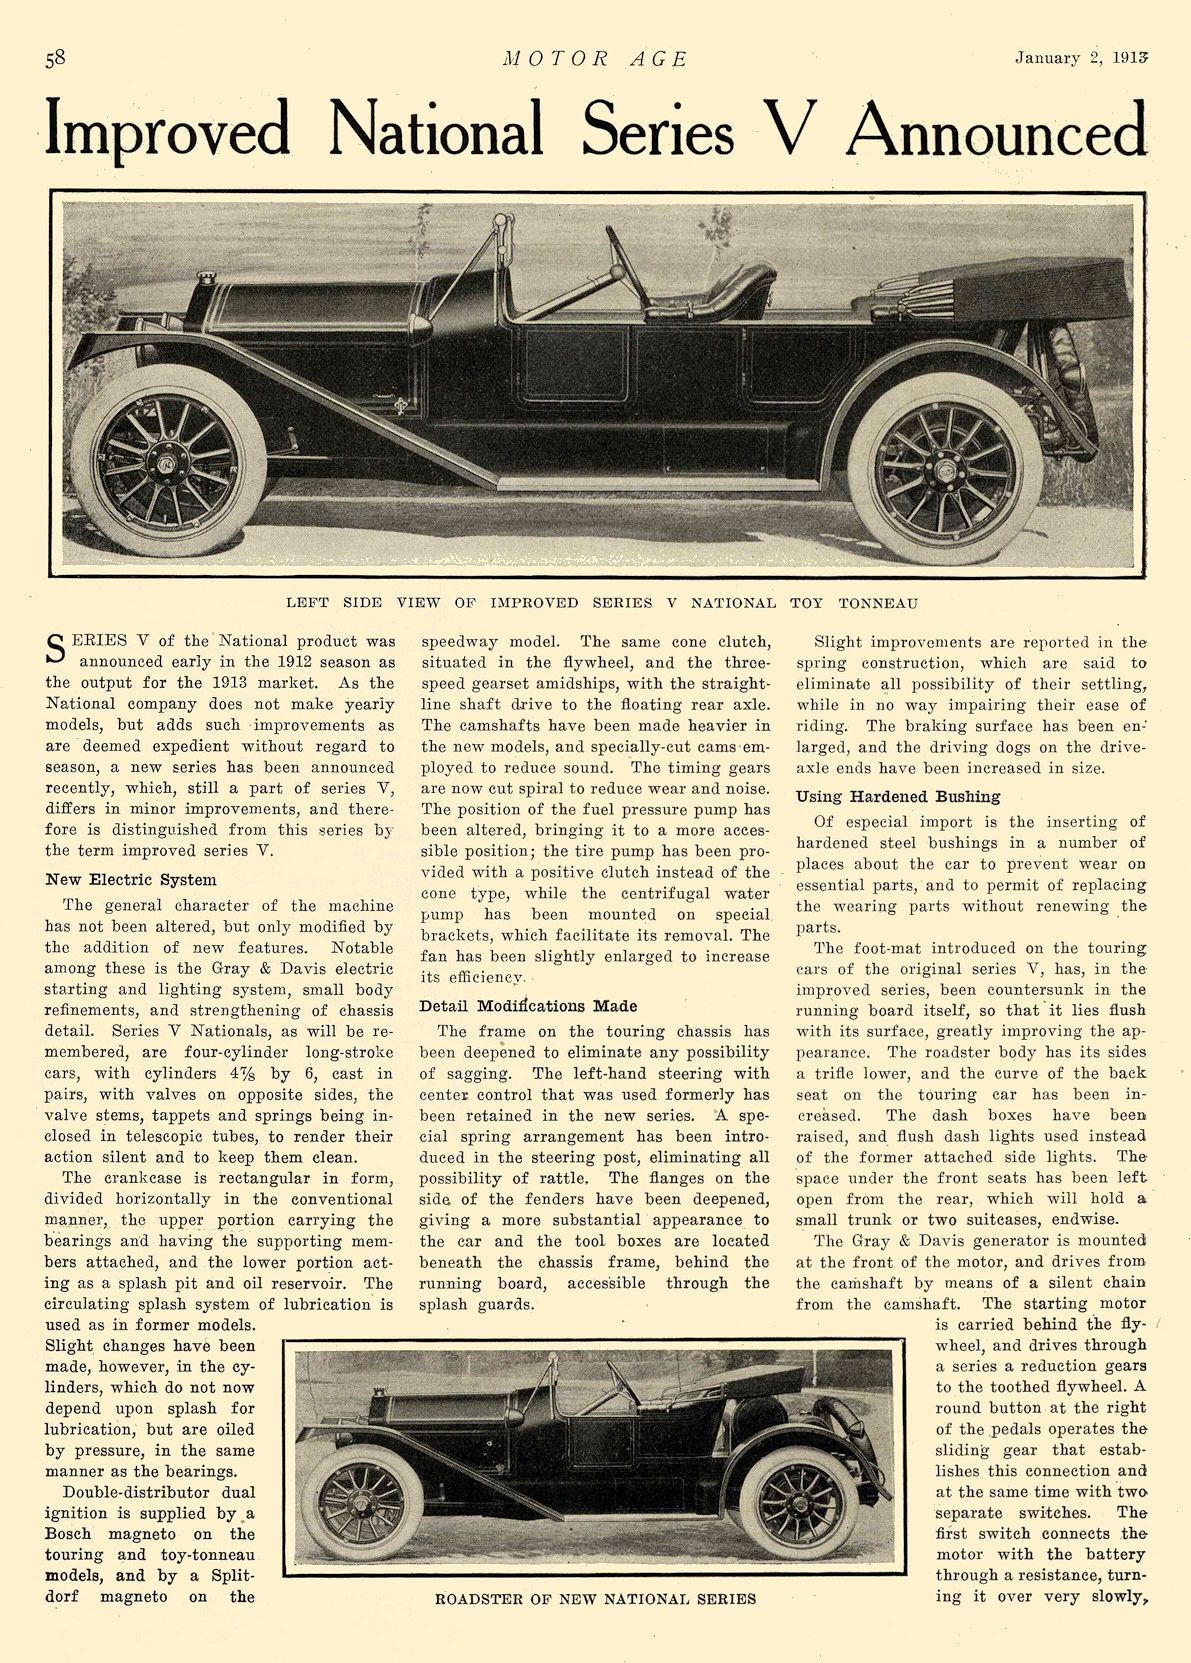 """1913 1 2 NATIONAL Article National """"SIX"""" $2375 Improved National Series V Announced National Motor Vehicle Co. Indianapolis, IND MOTOR AGE January 2, 1913 8.5″x12″ page 58"""